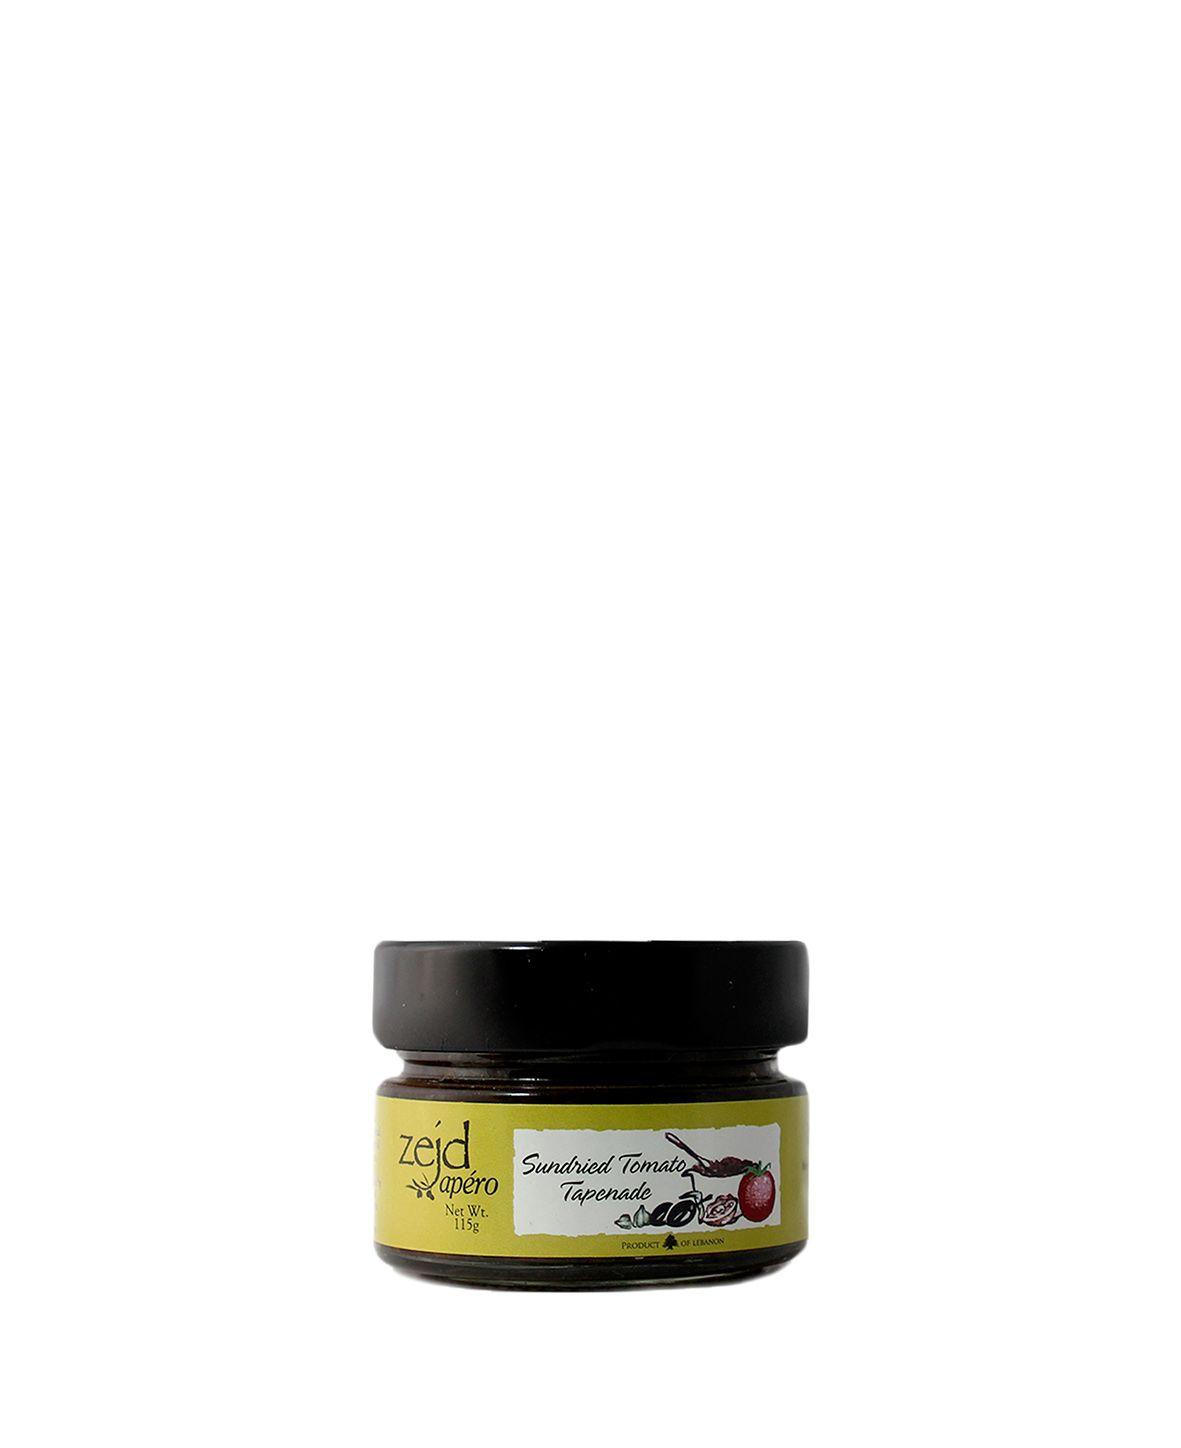 House of Zejd, Sundried Tomato Tapenade 115g